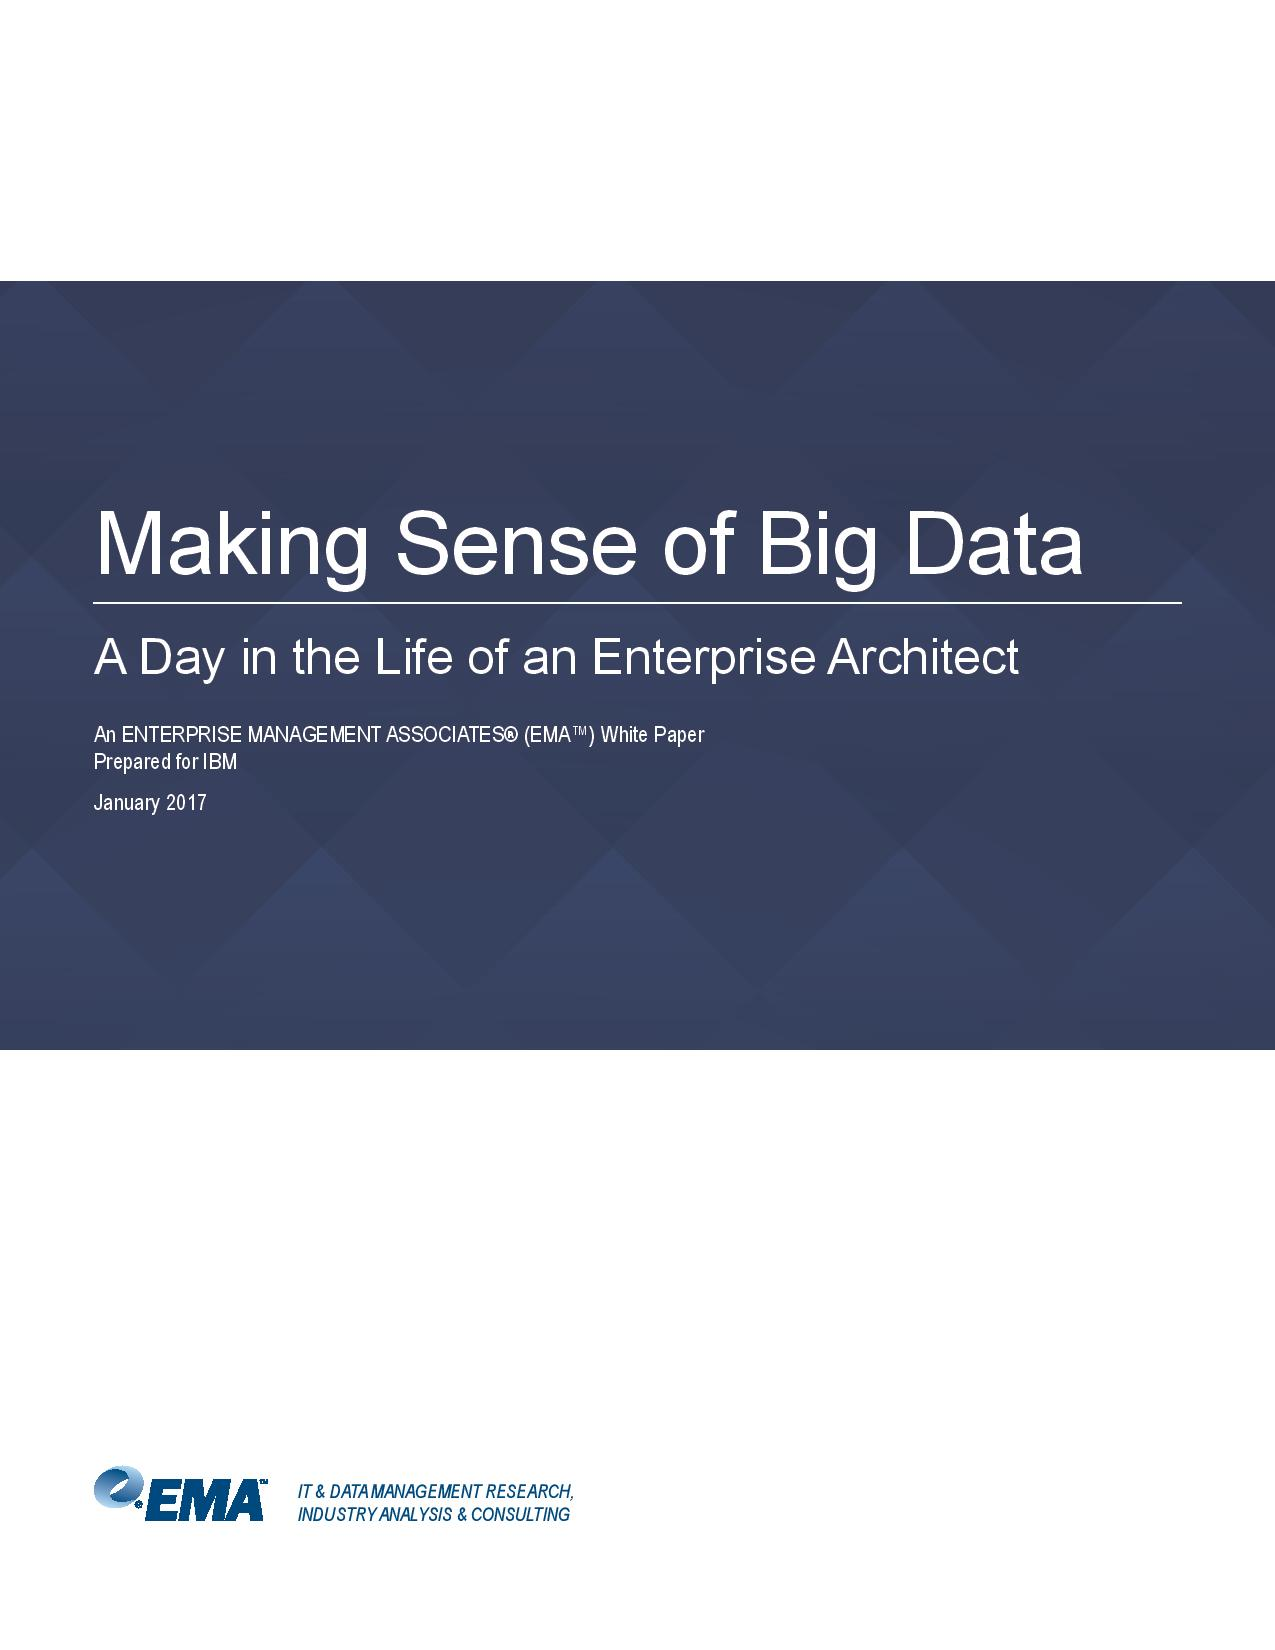 Making Sense of Big Data A Day in the Life of an Enterprise Architect